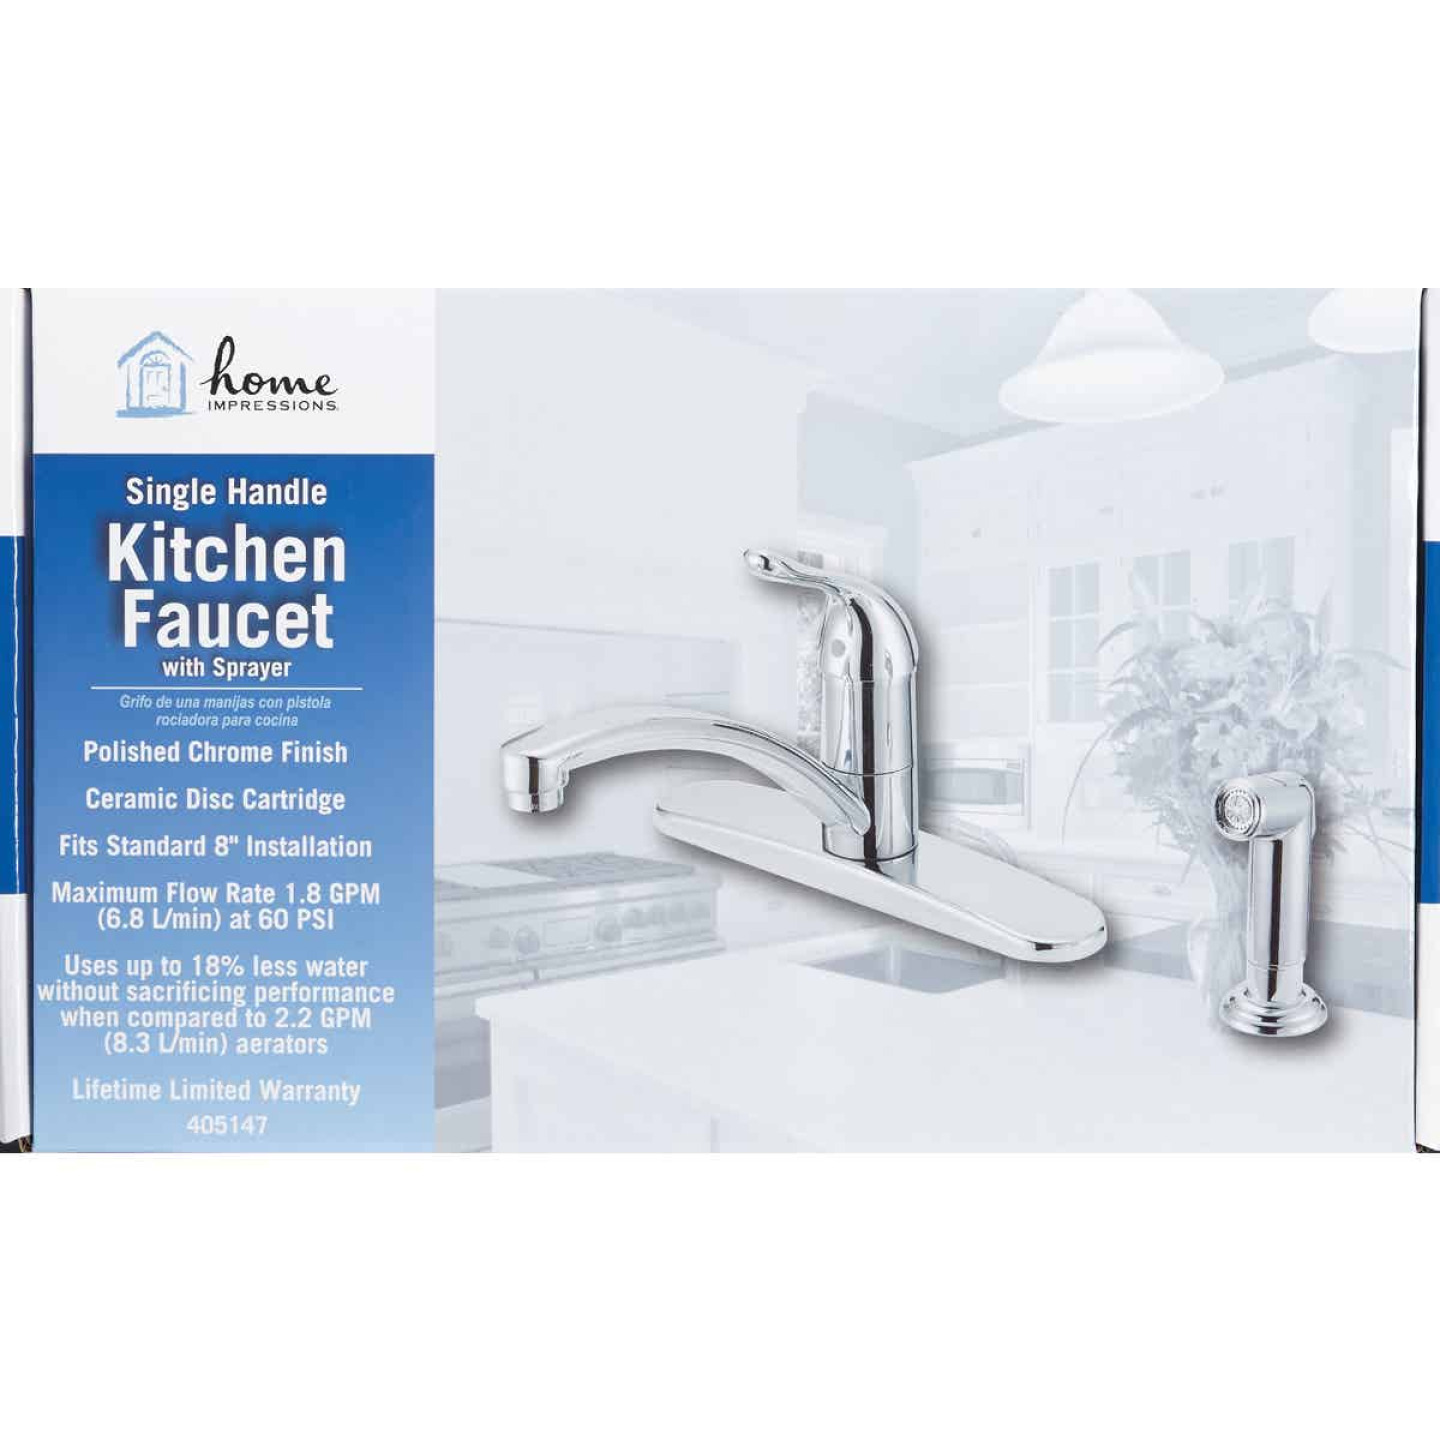 Home Impressions Single Handle Lever Kitchen Faucet with Side Spray, Chrome Image 2